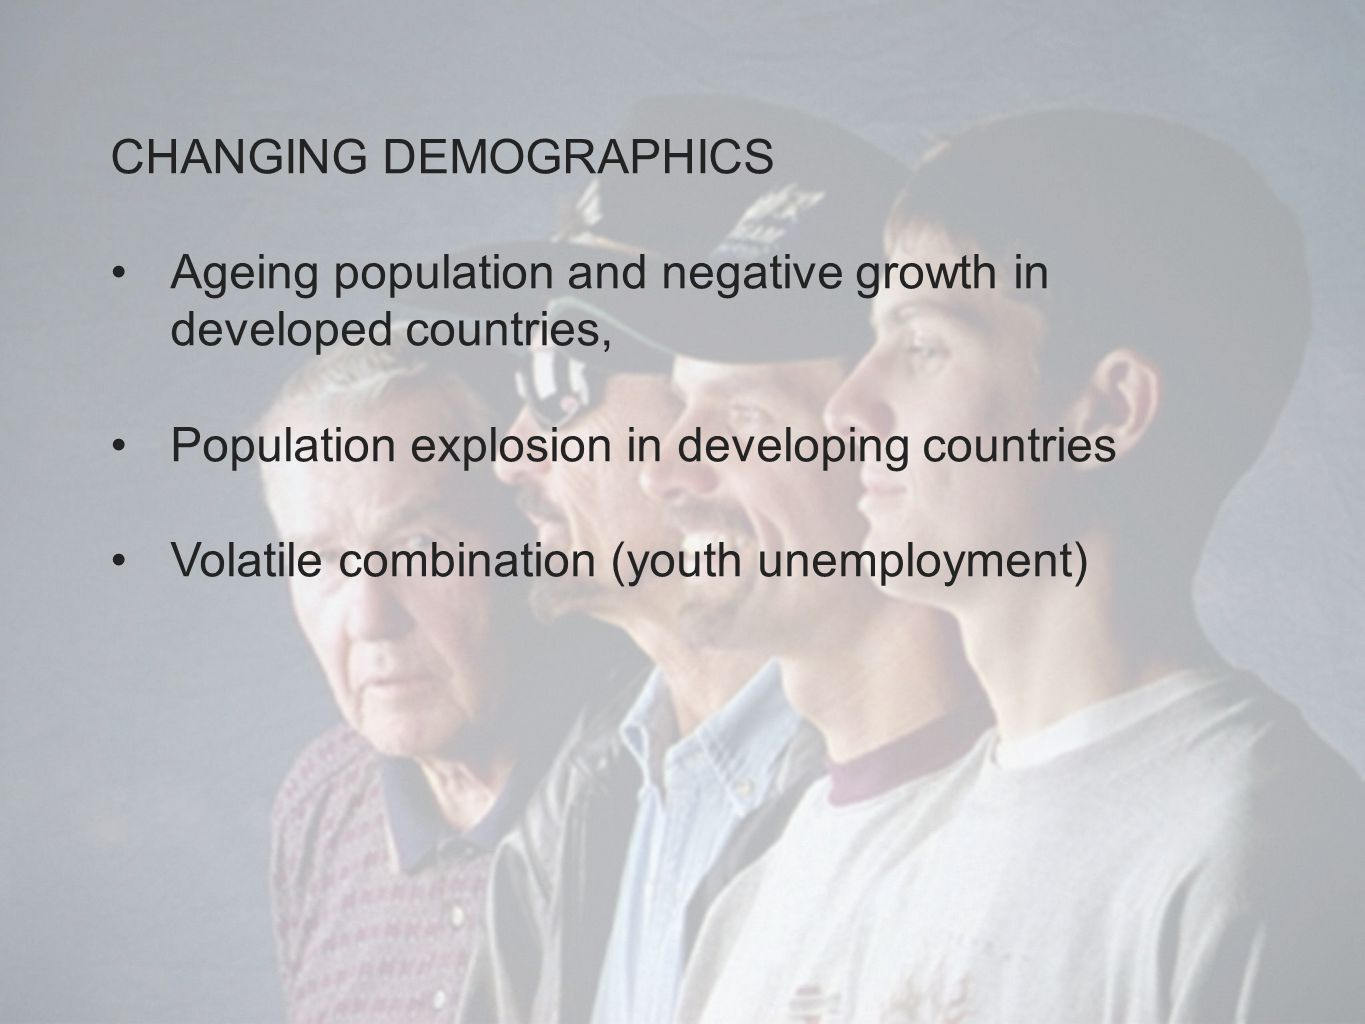 CHANGING DEMOGRAPHICS Ageing population and negative growth in developed countries, Population explosion in developing countries Volatile combination (youth unemployment)